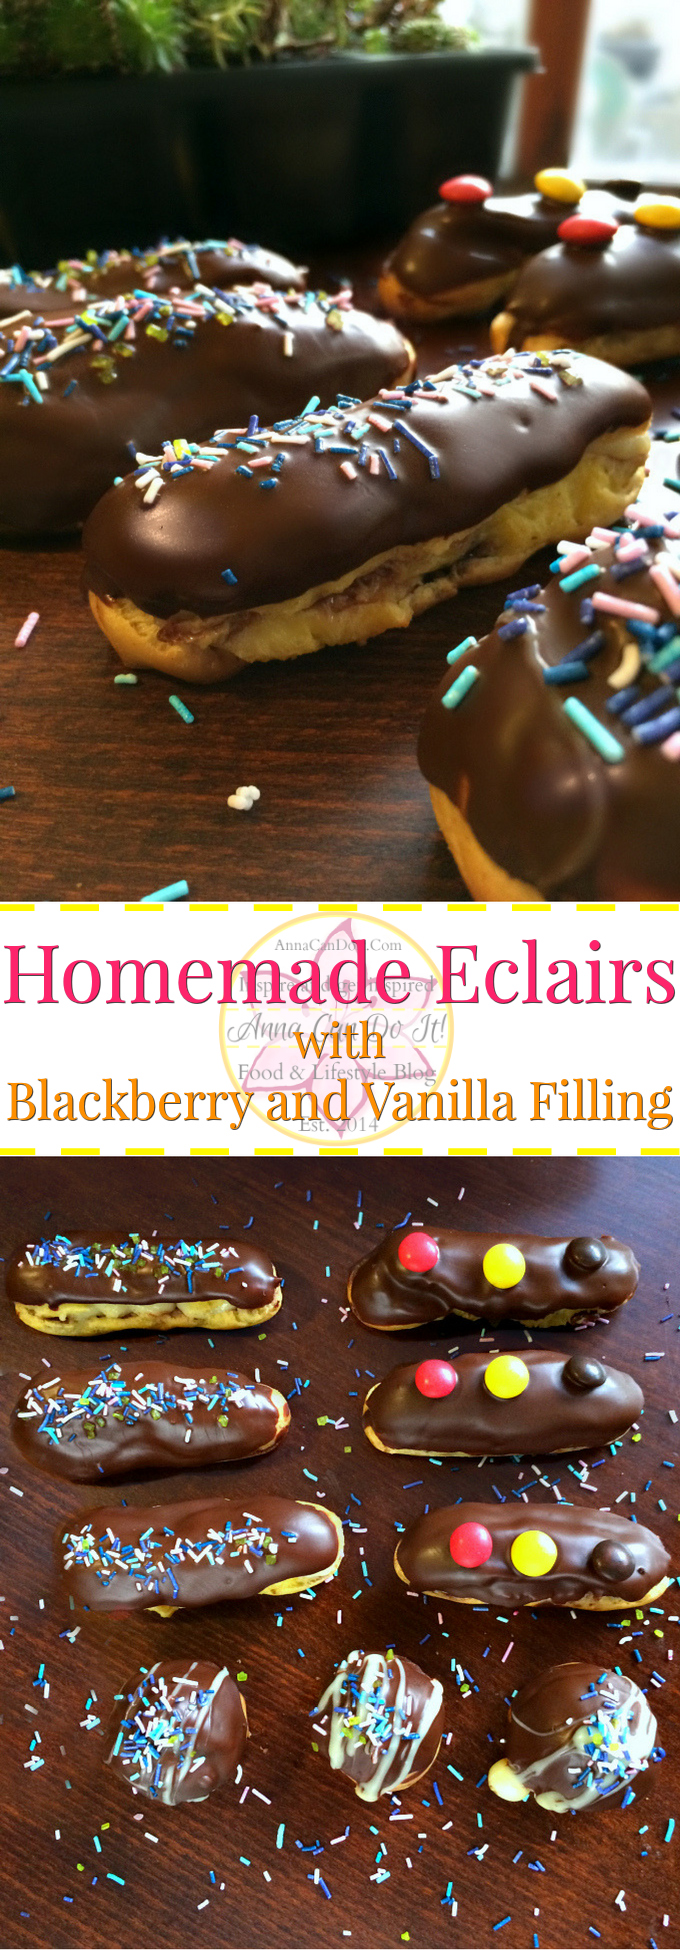 Homemade Eclairs with Blackberry and Vanilla Filling - Anna Can Do It! - Homemade Eclairs with Blackberry and Vanilla Filling are delicious and unbelievably simple to make them on your own.